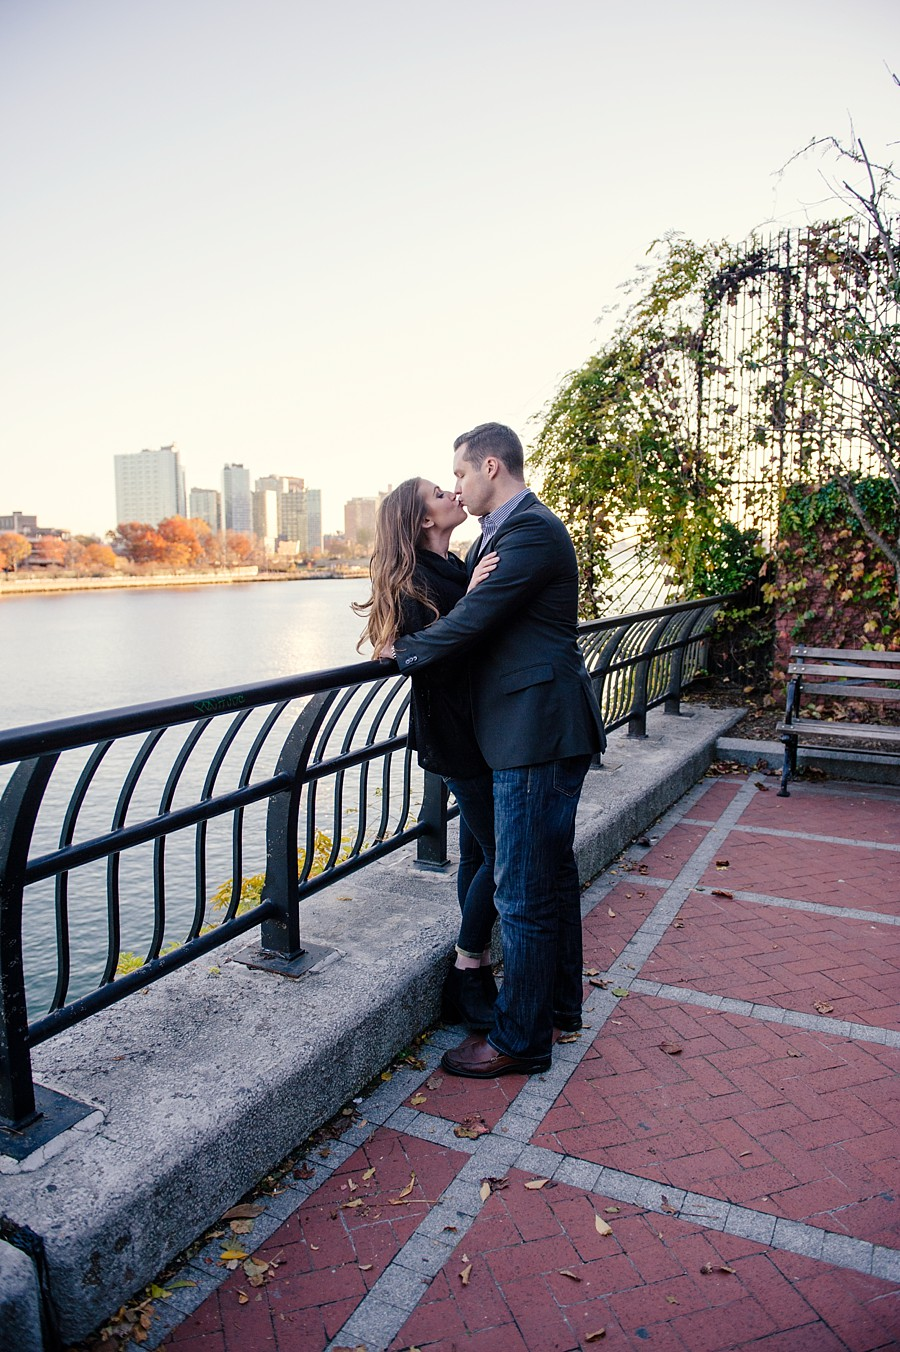 Central_Park_Engagement_Session_KE_22.jpg